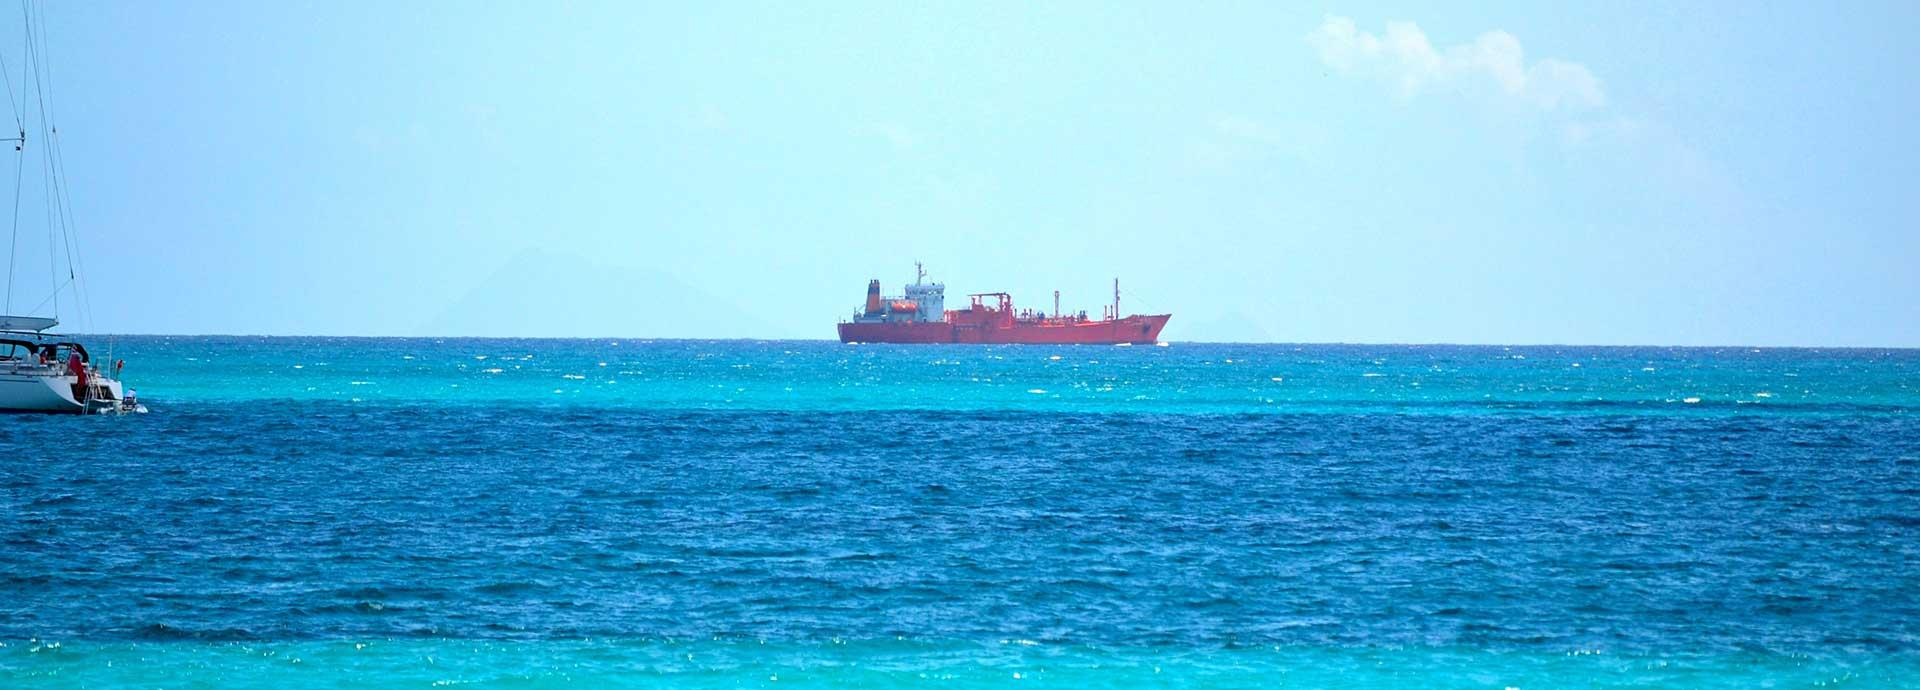 As ocean temperatures rise, shipowners look for ways to cope